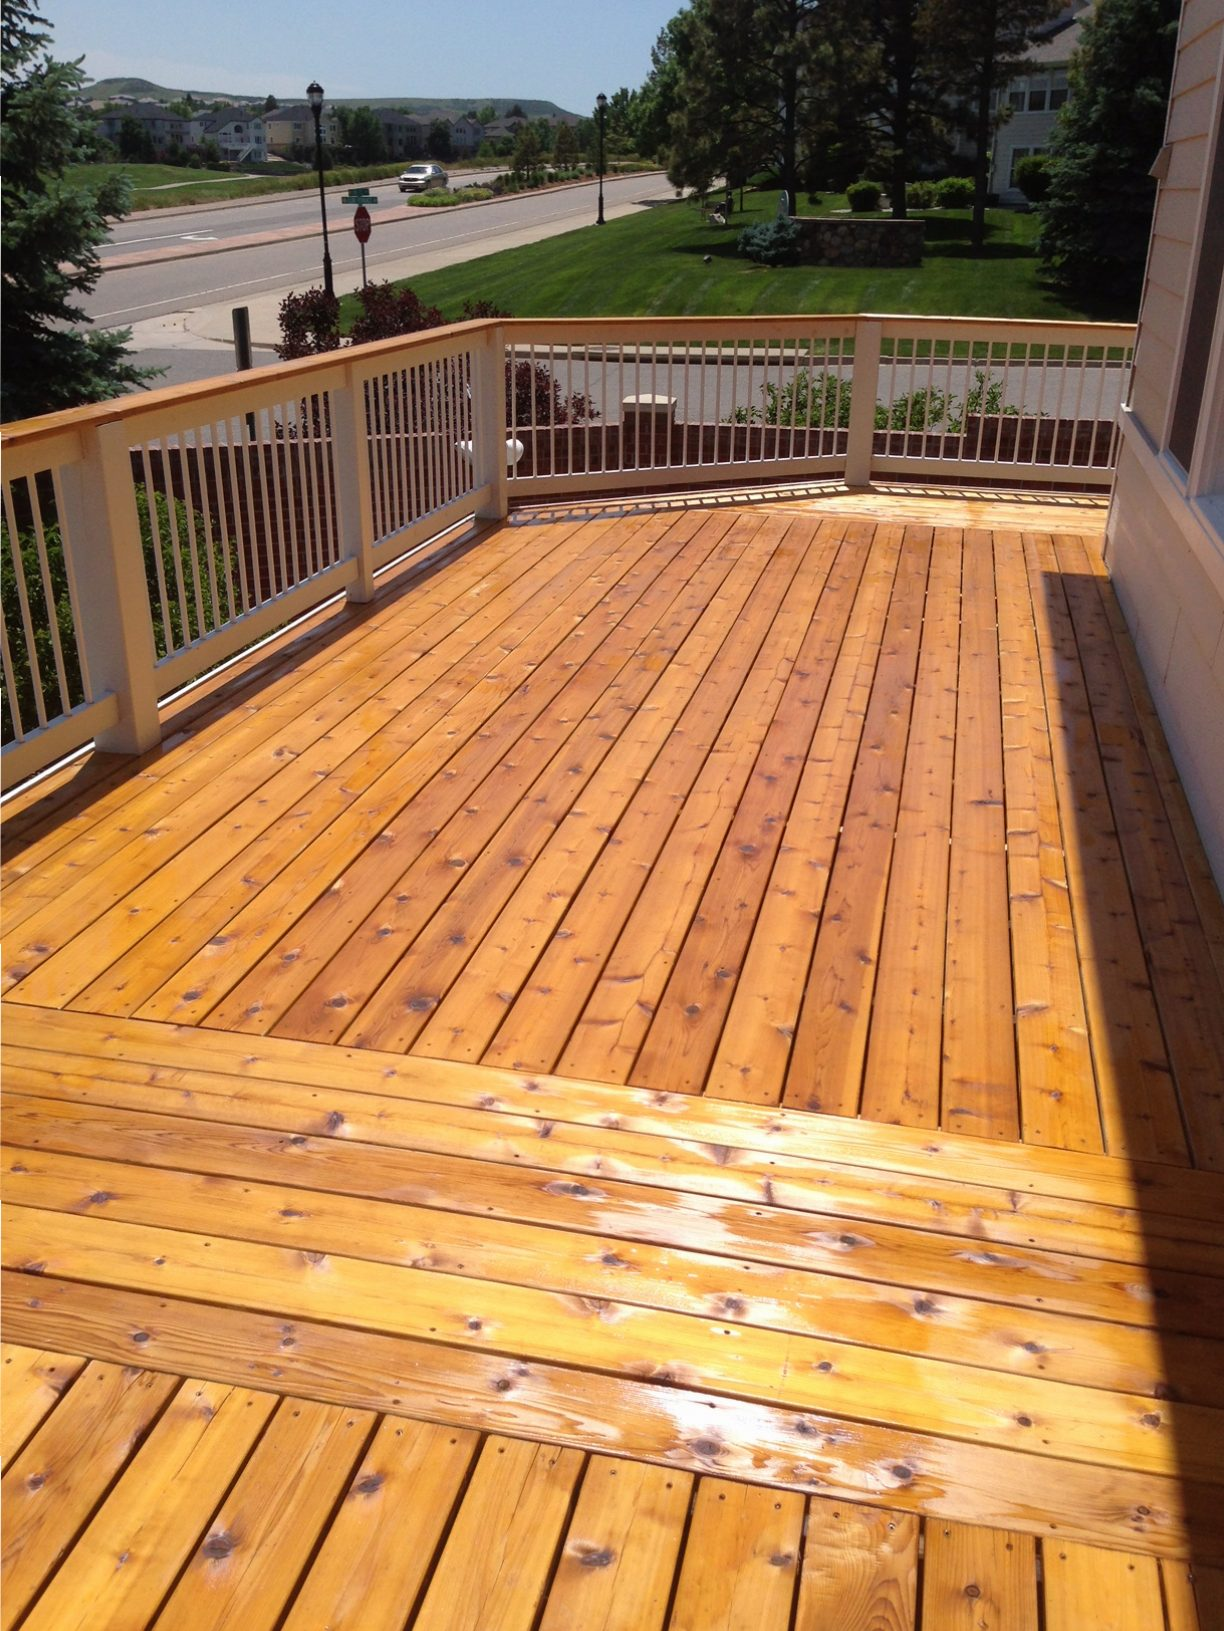 Home Deck Tune Up Deck Refinishing Rebuilding New